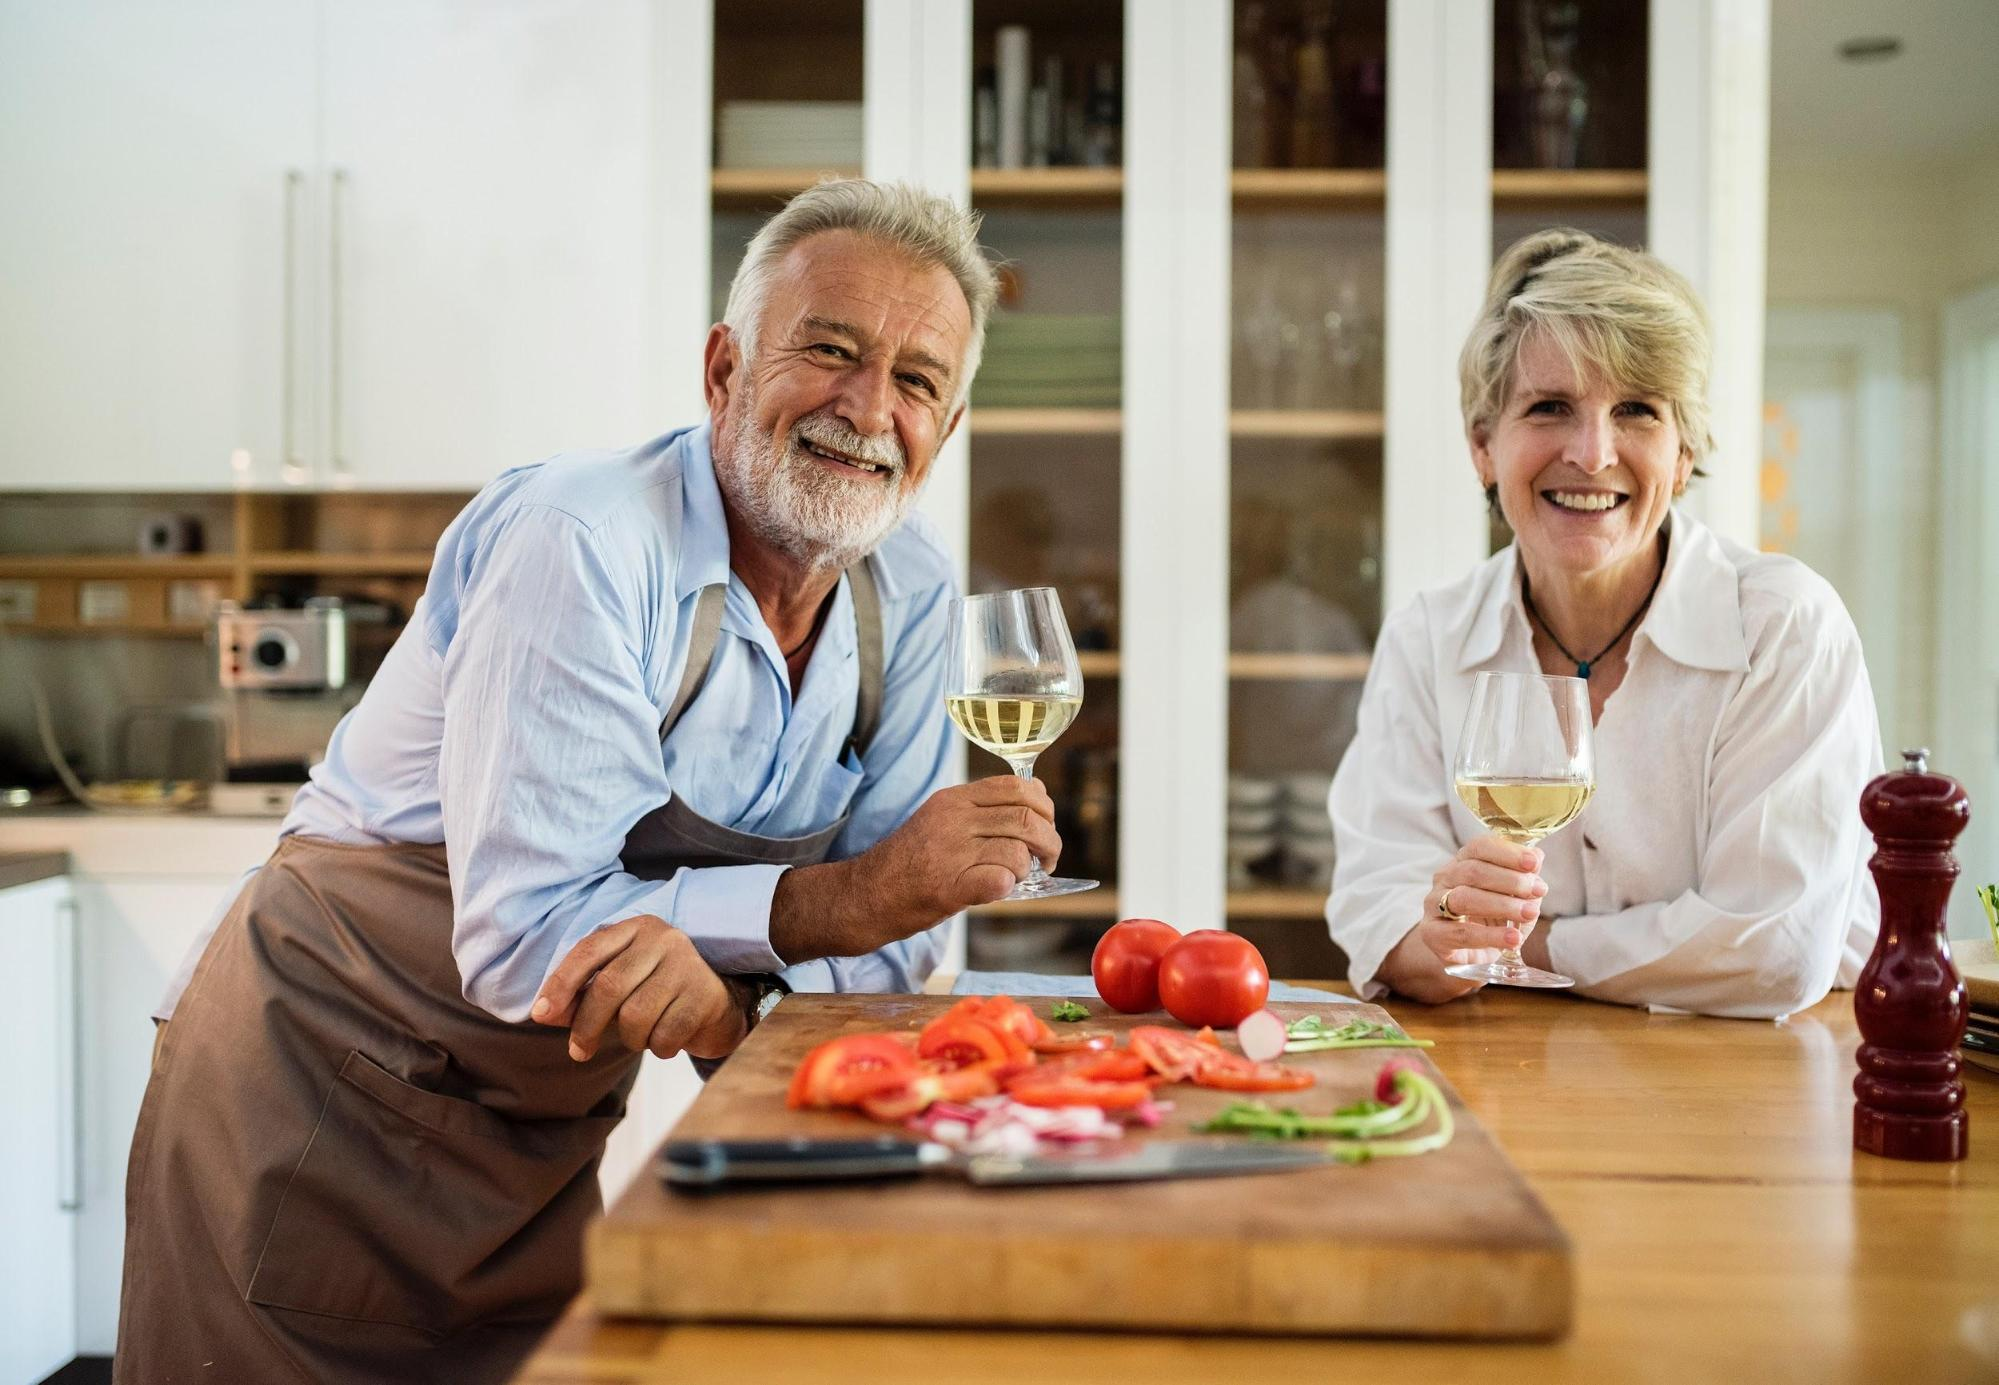 Older man and woman in kitchen with tomatoes on cutting board, drinking wine; image via Pexels.com.